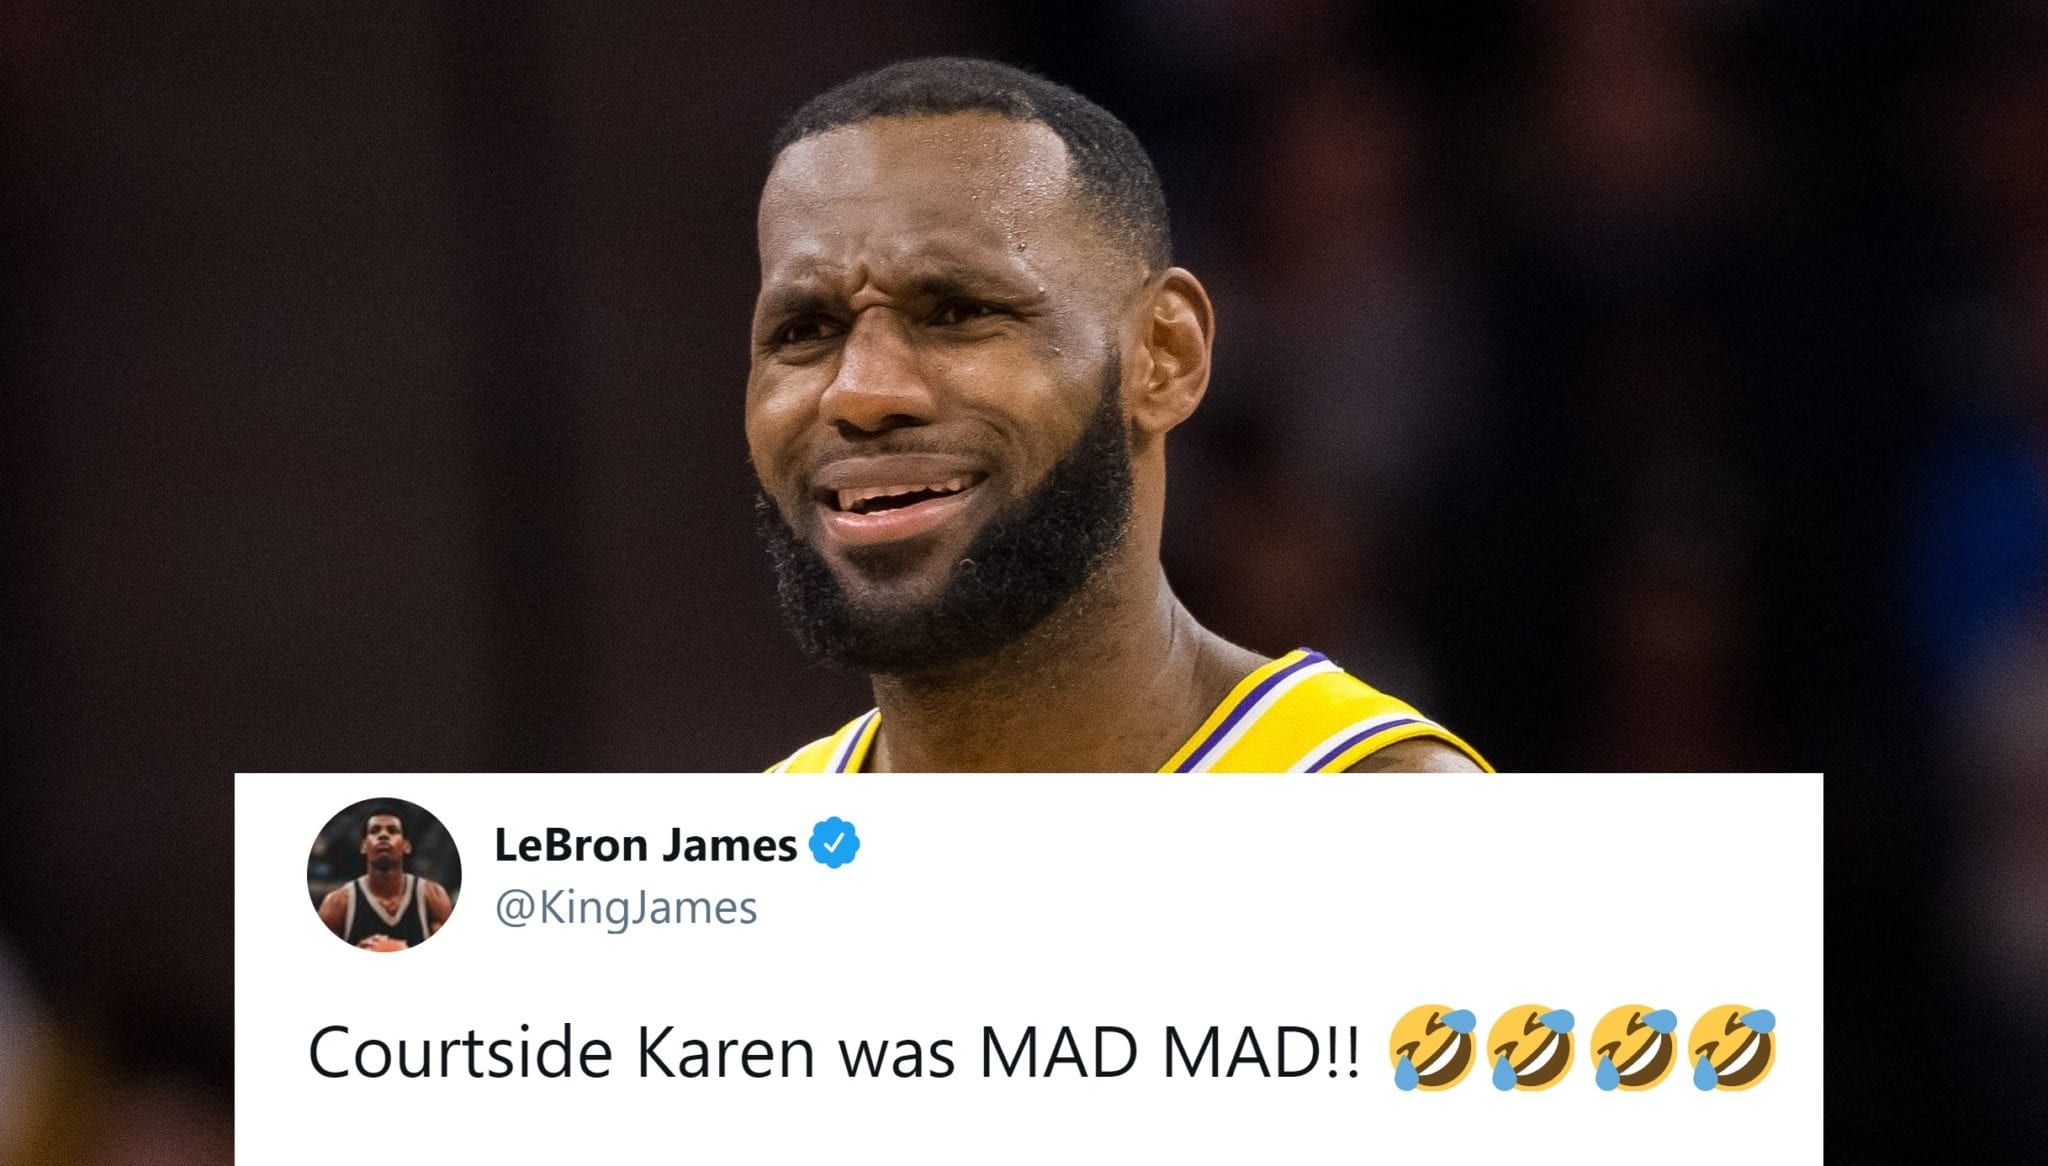 LeBron James Gets Into Verbal Altercation With 'Courtside Karen'